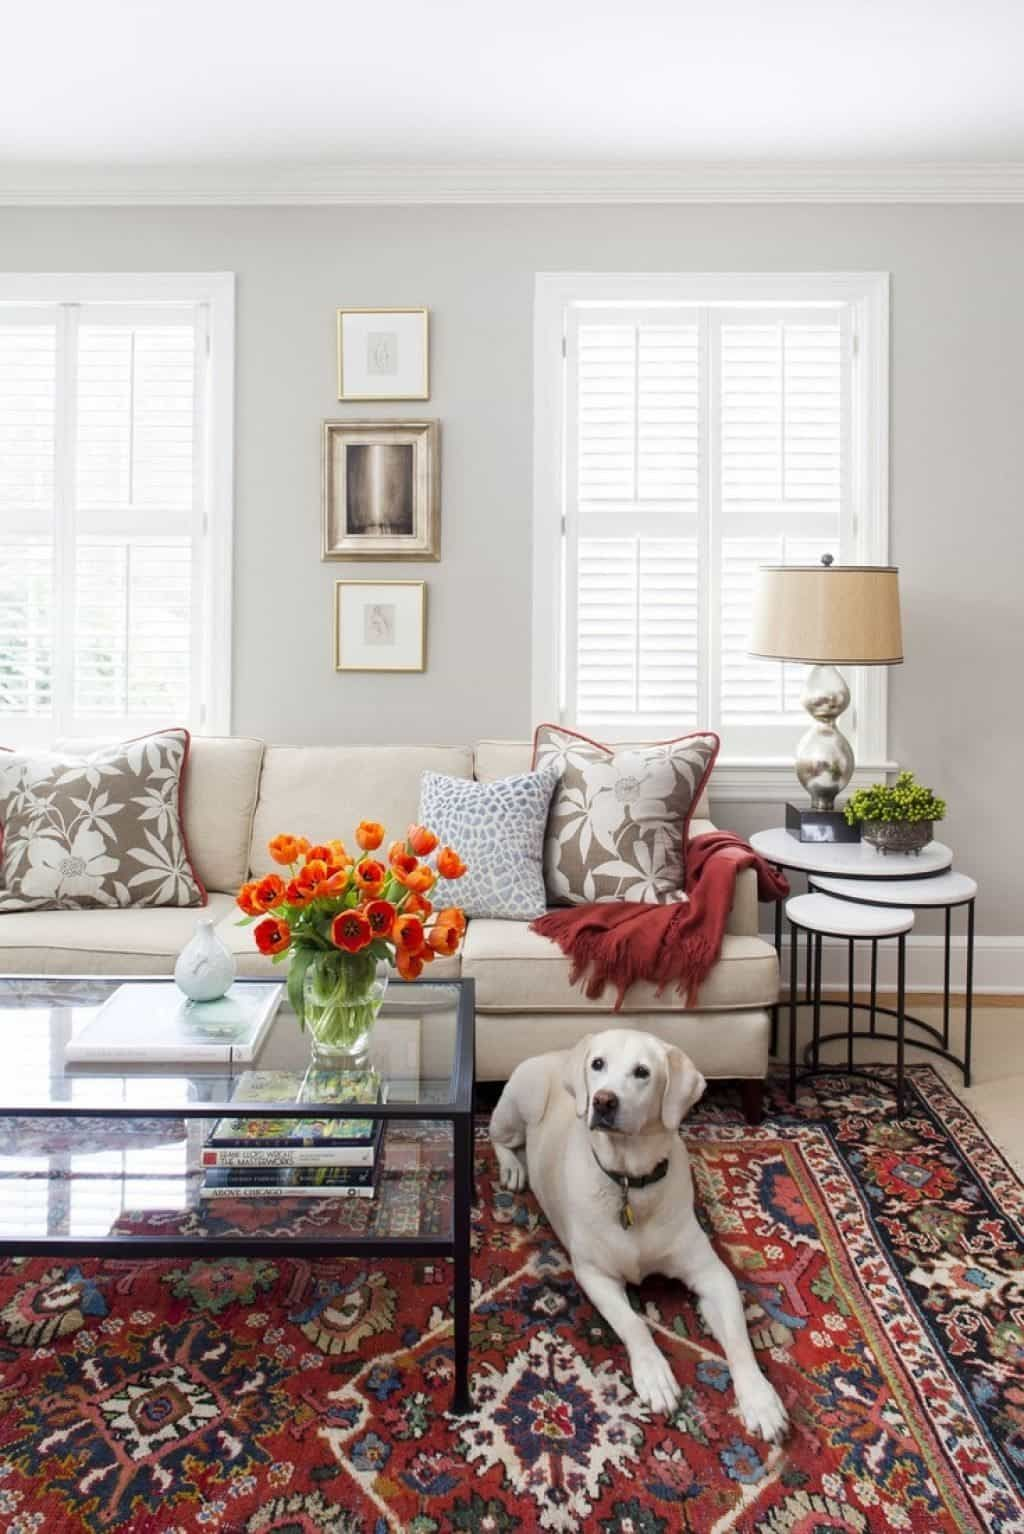 Living Room With Nesting End Table And Turkish Rug | Nest, Living ...